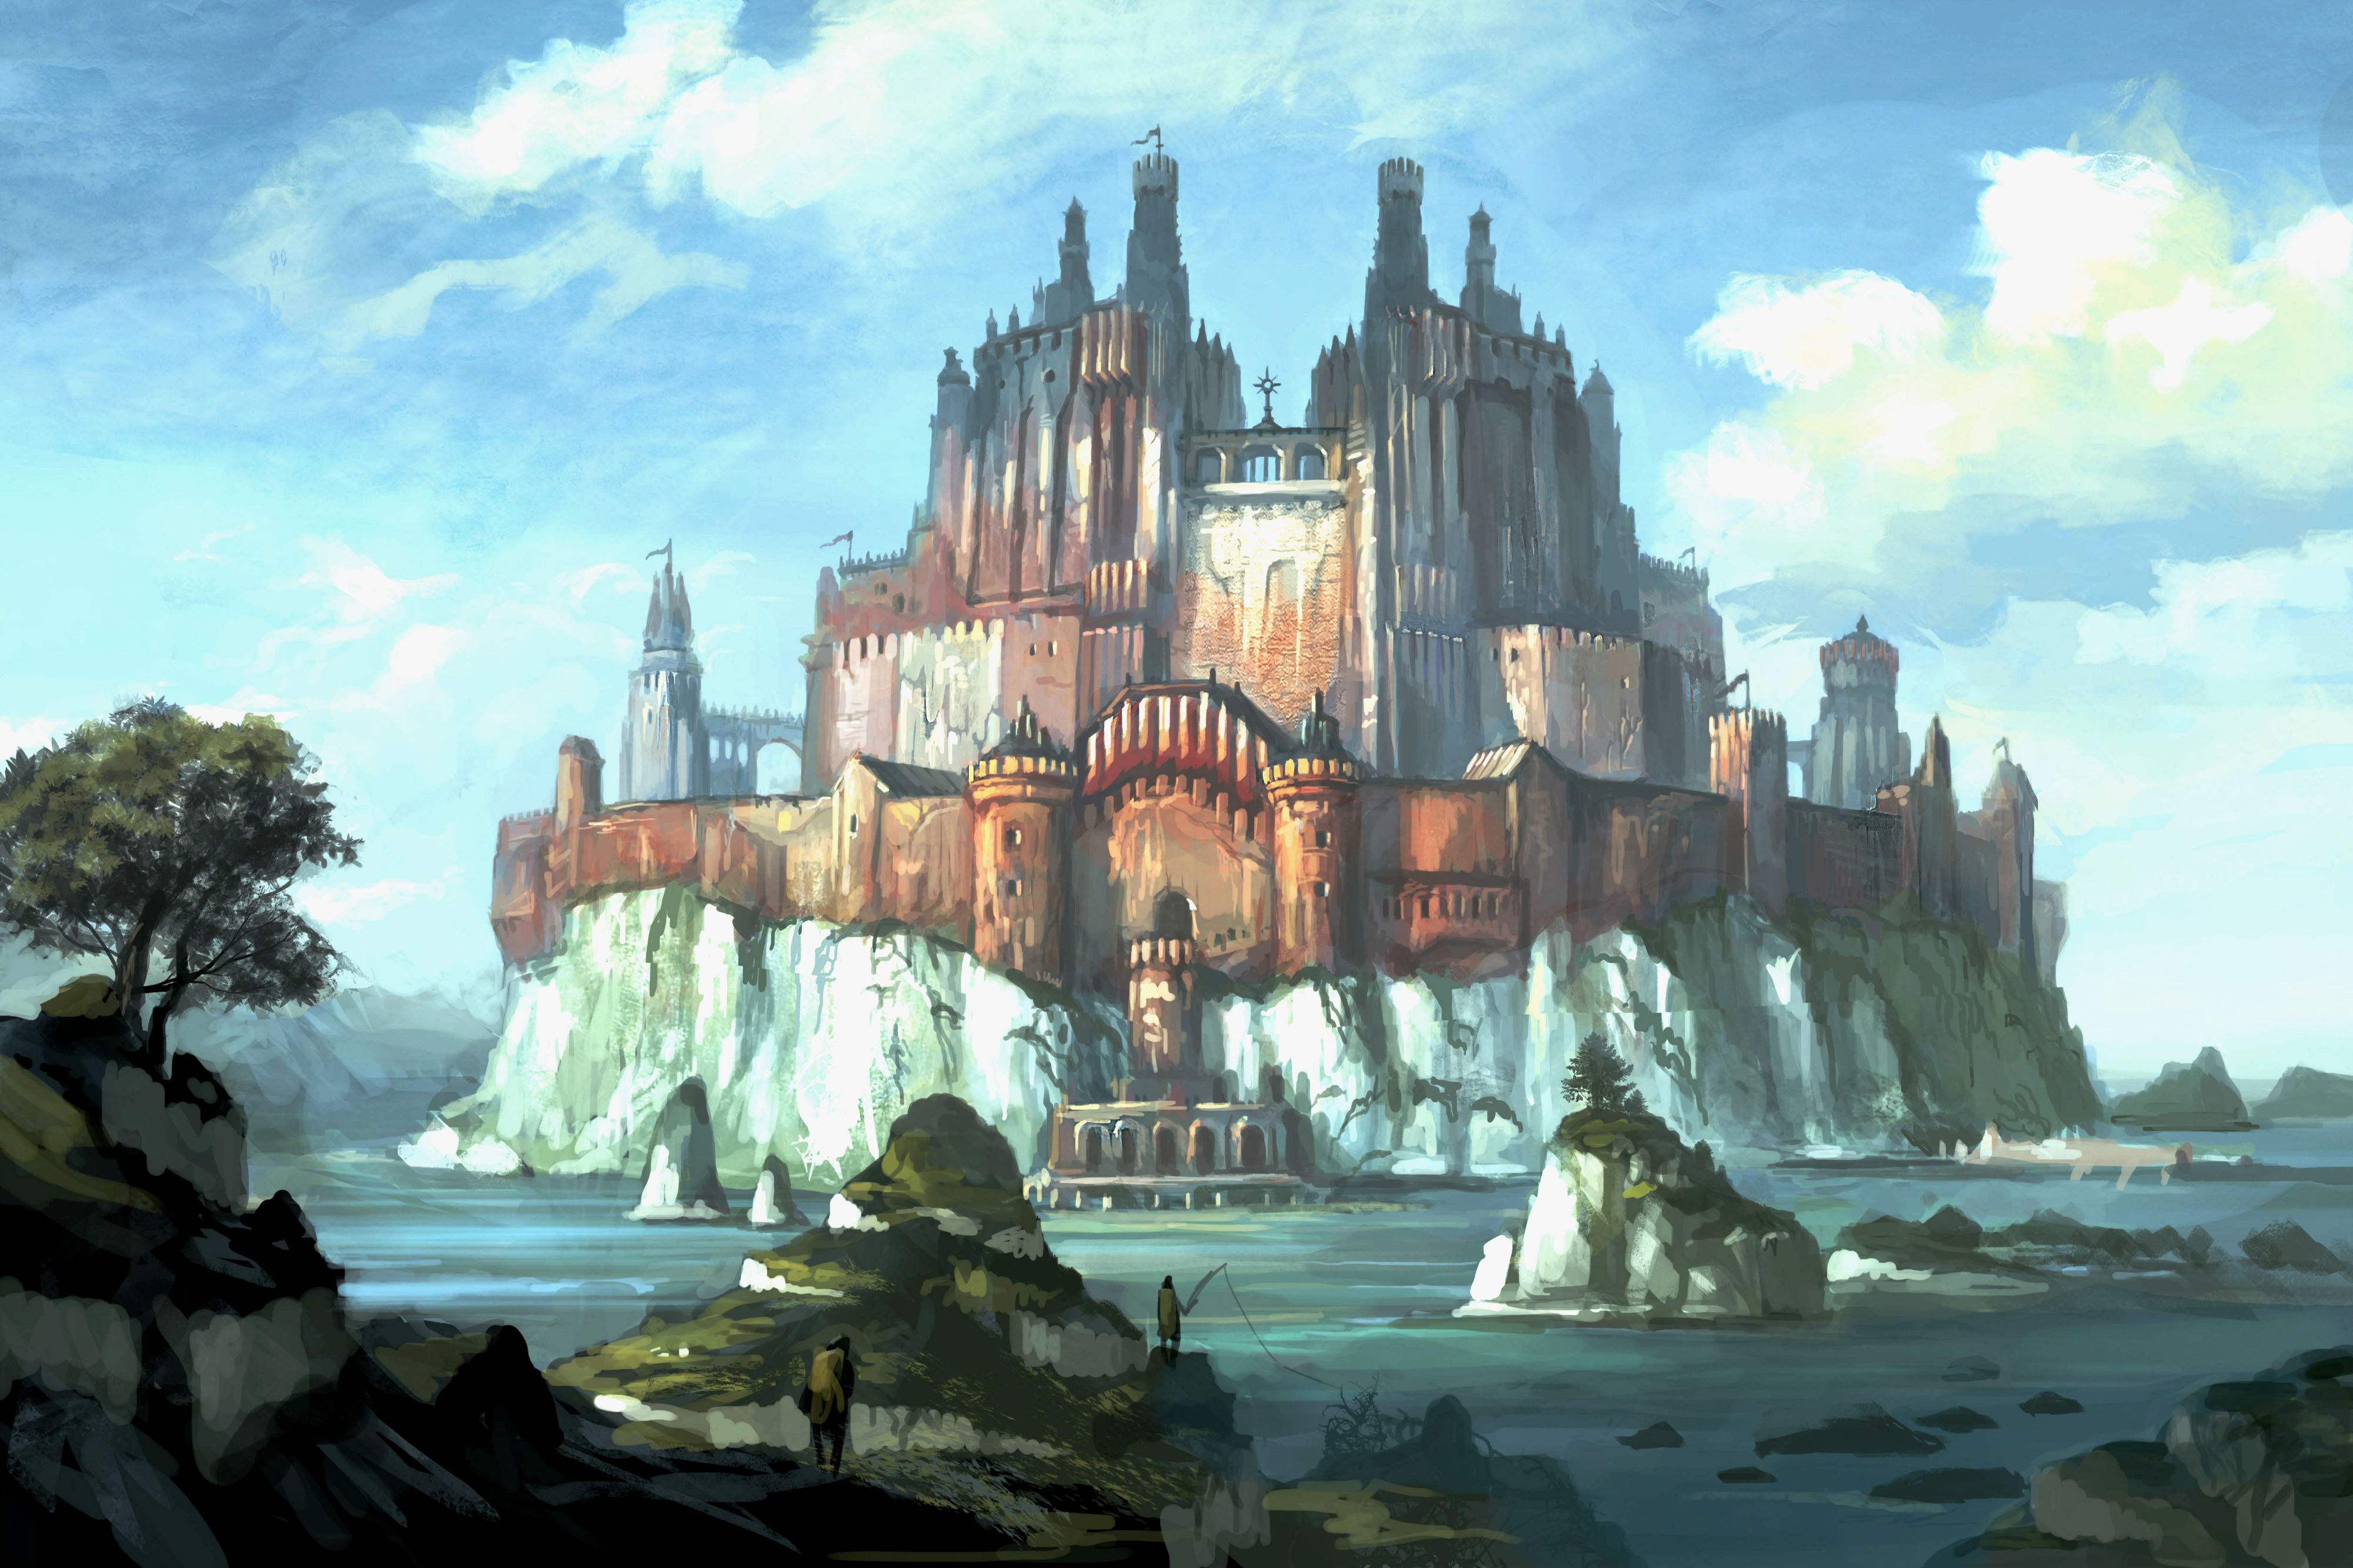 Wallpaper Abyss Explore the Collection Castles Fantasy Castle 242442 4000x2666